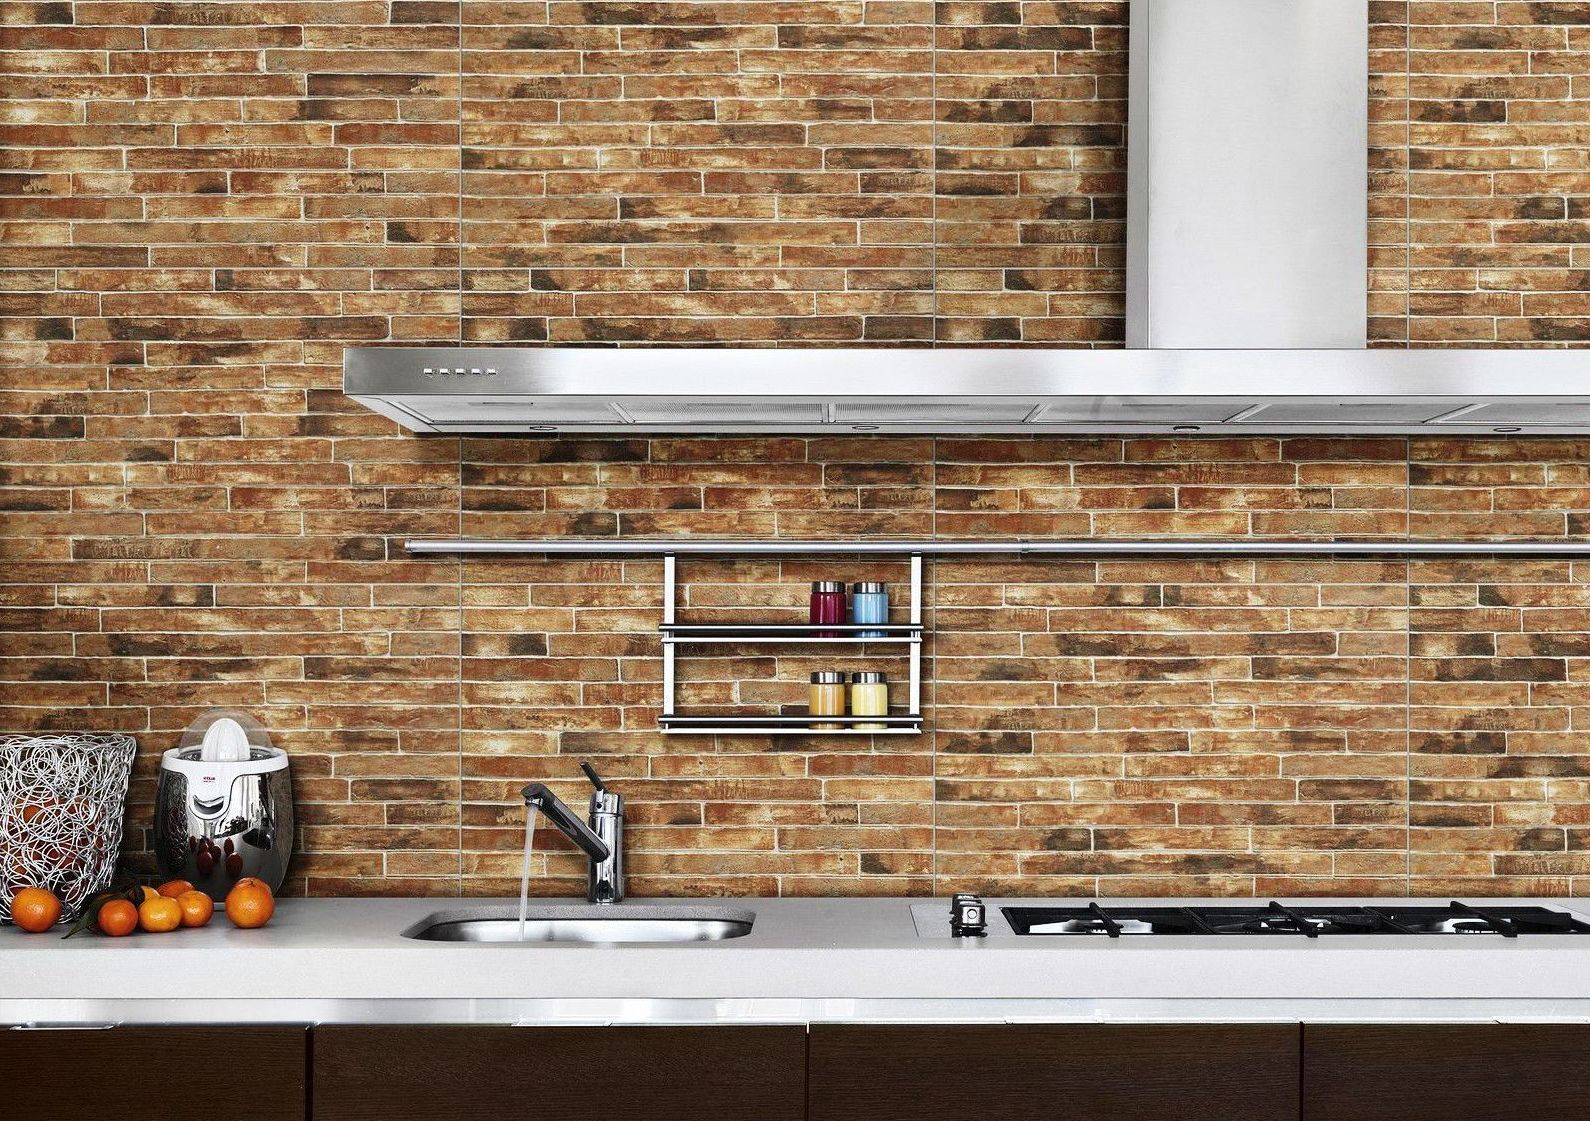 Brick Effect Kitchen Wall Tiles | Kitchens | Pinterest